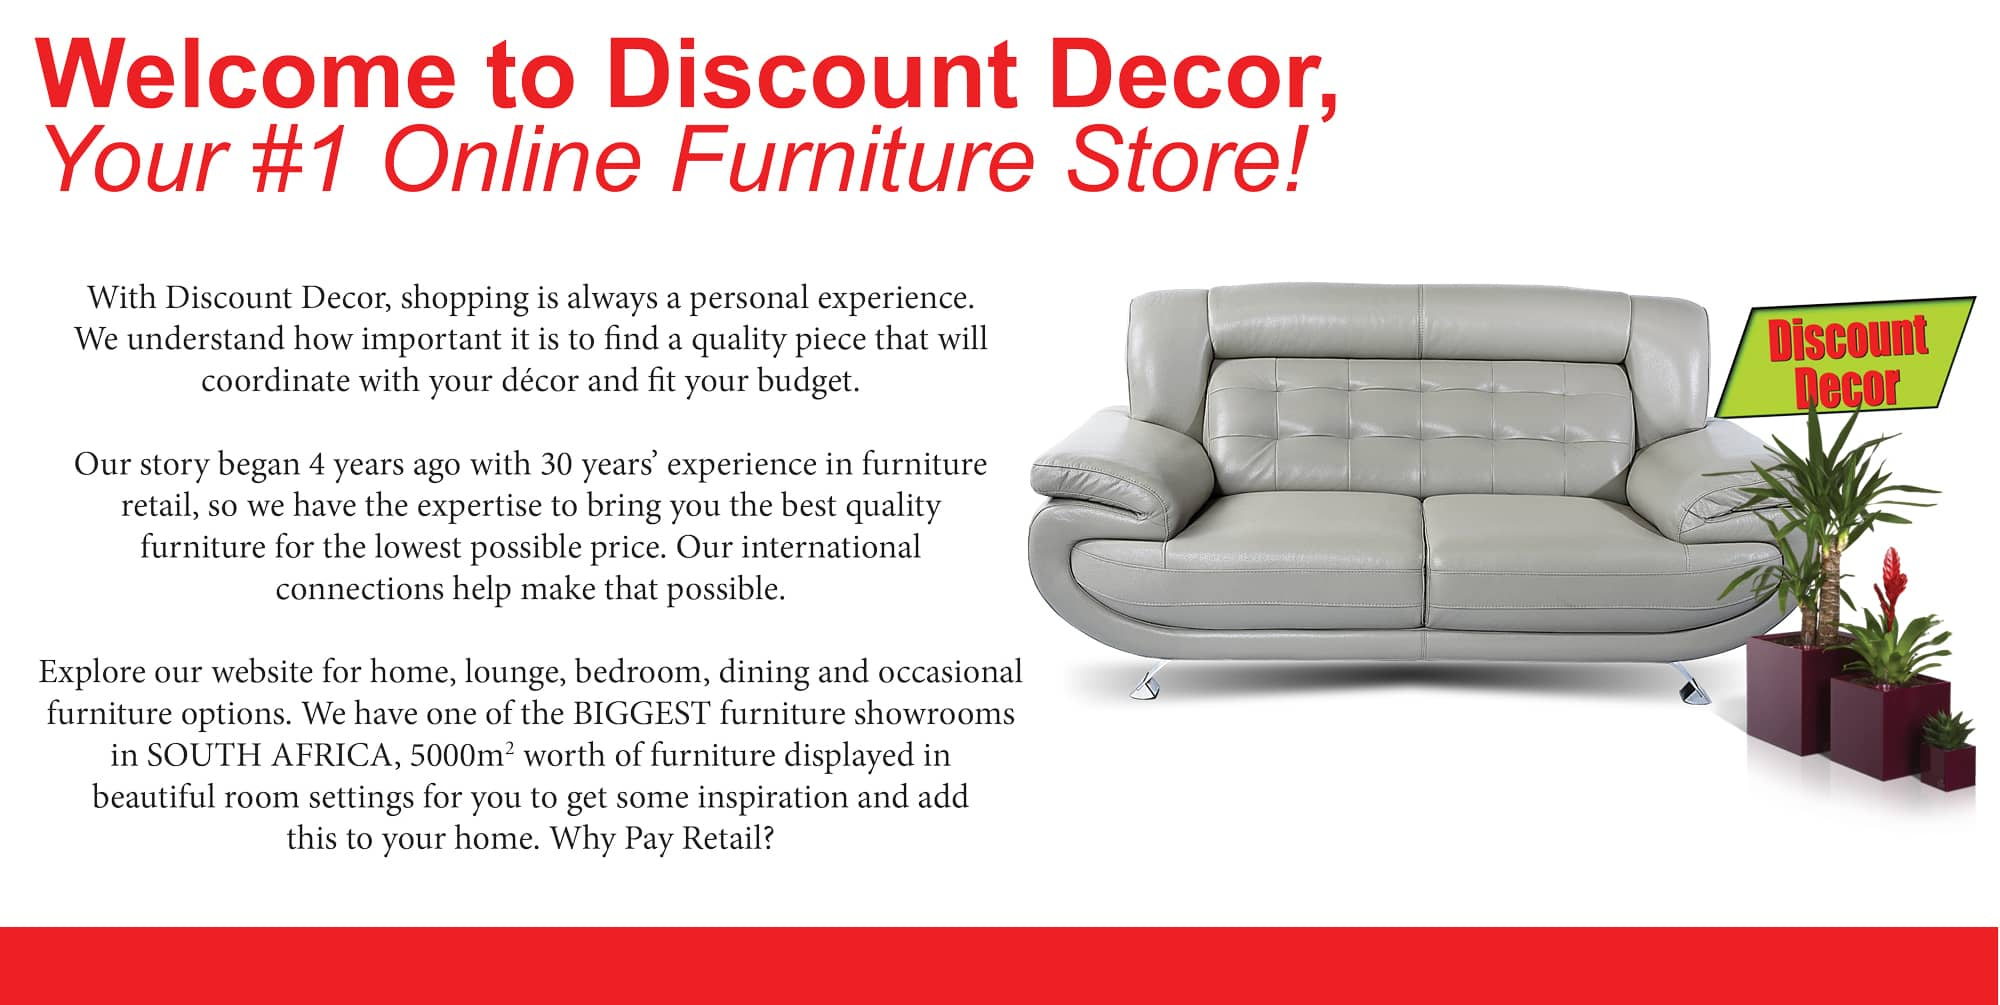 Home Furniture And Decor Stores Stylish Home Decor Chic Furniture At Affordable Prices